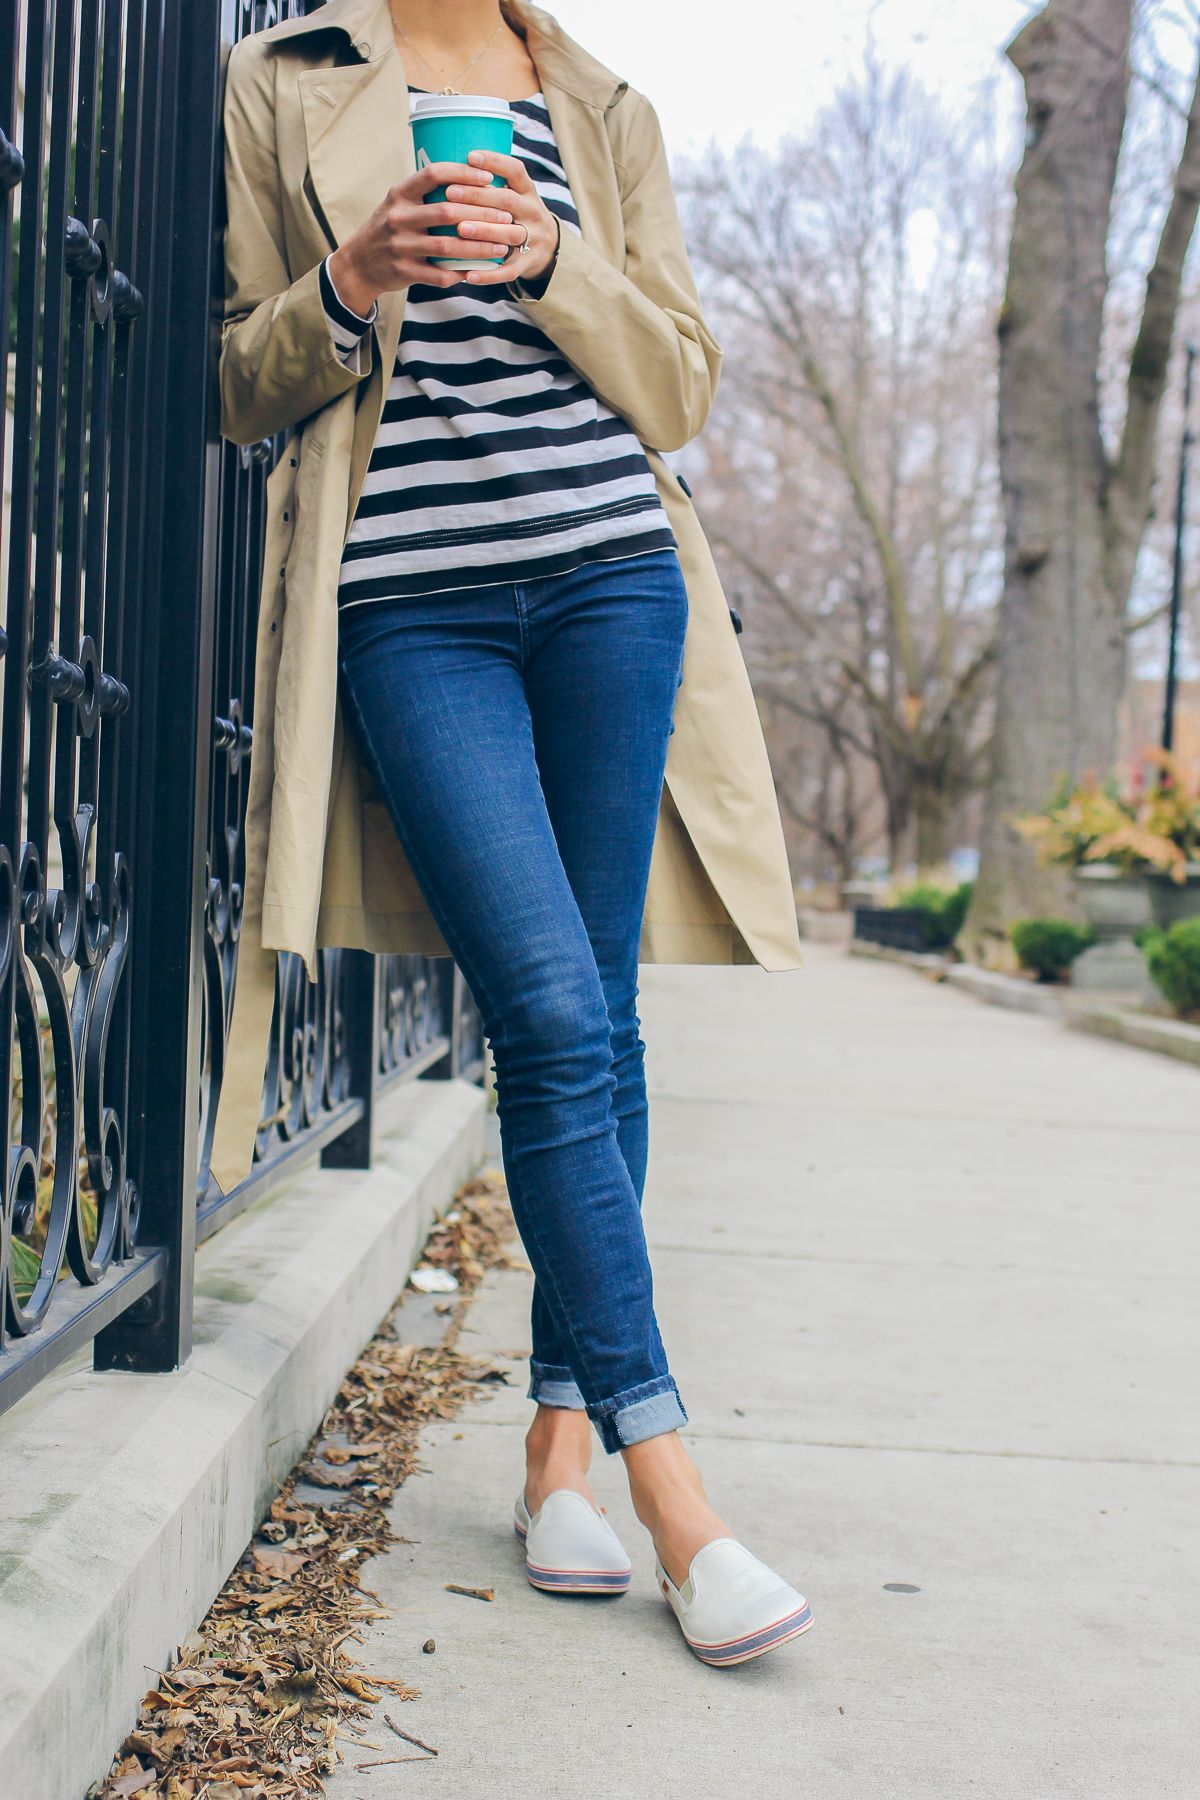 Around Town | Sneakers fashion outfits, Outfits, White keds